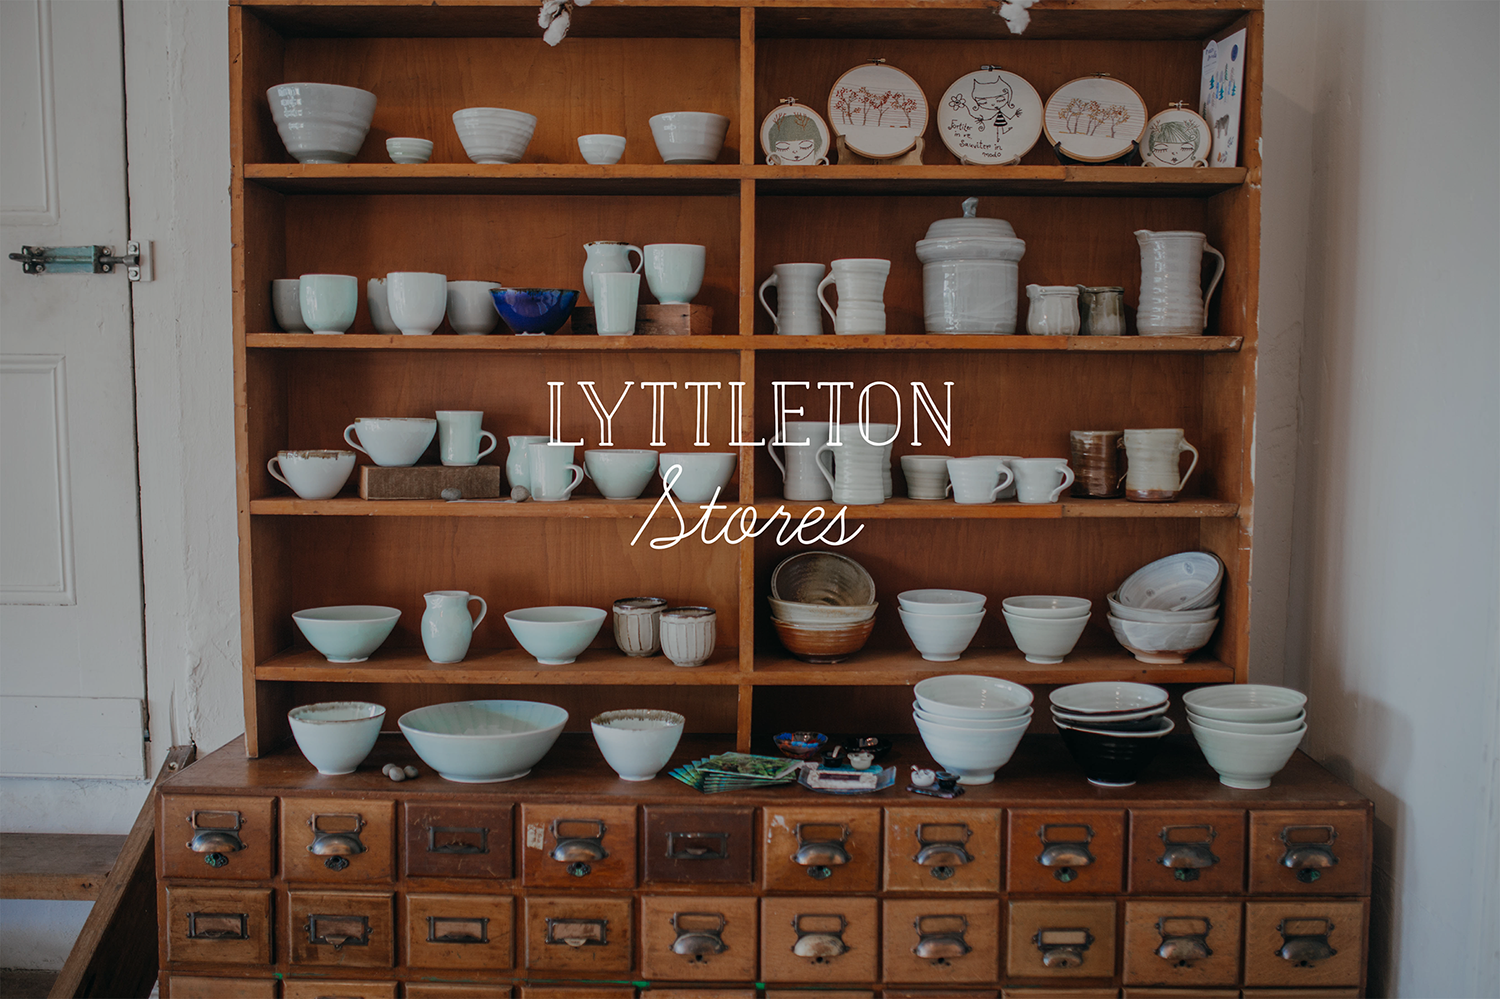 Atelier at Lyttelton Stores.png